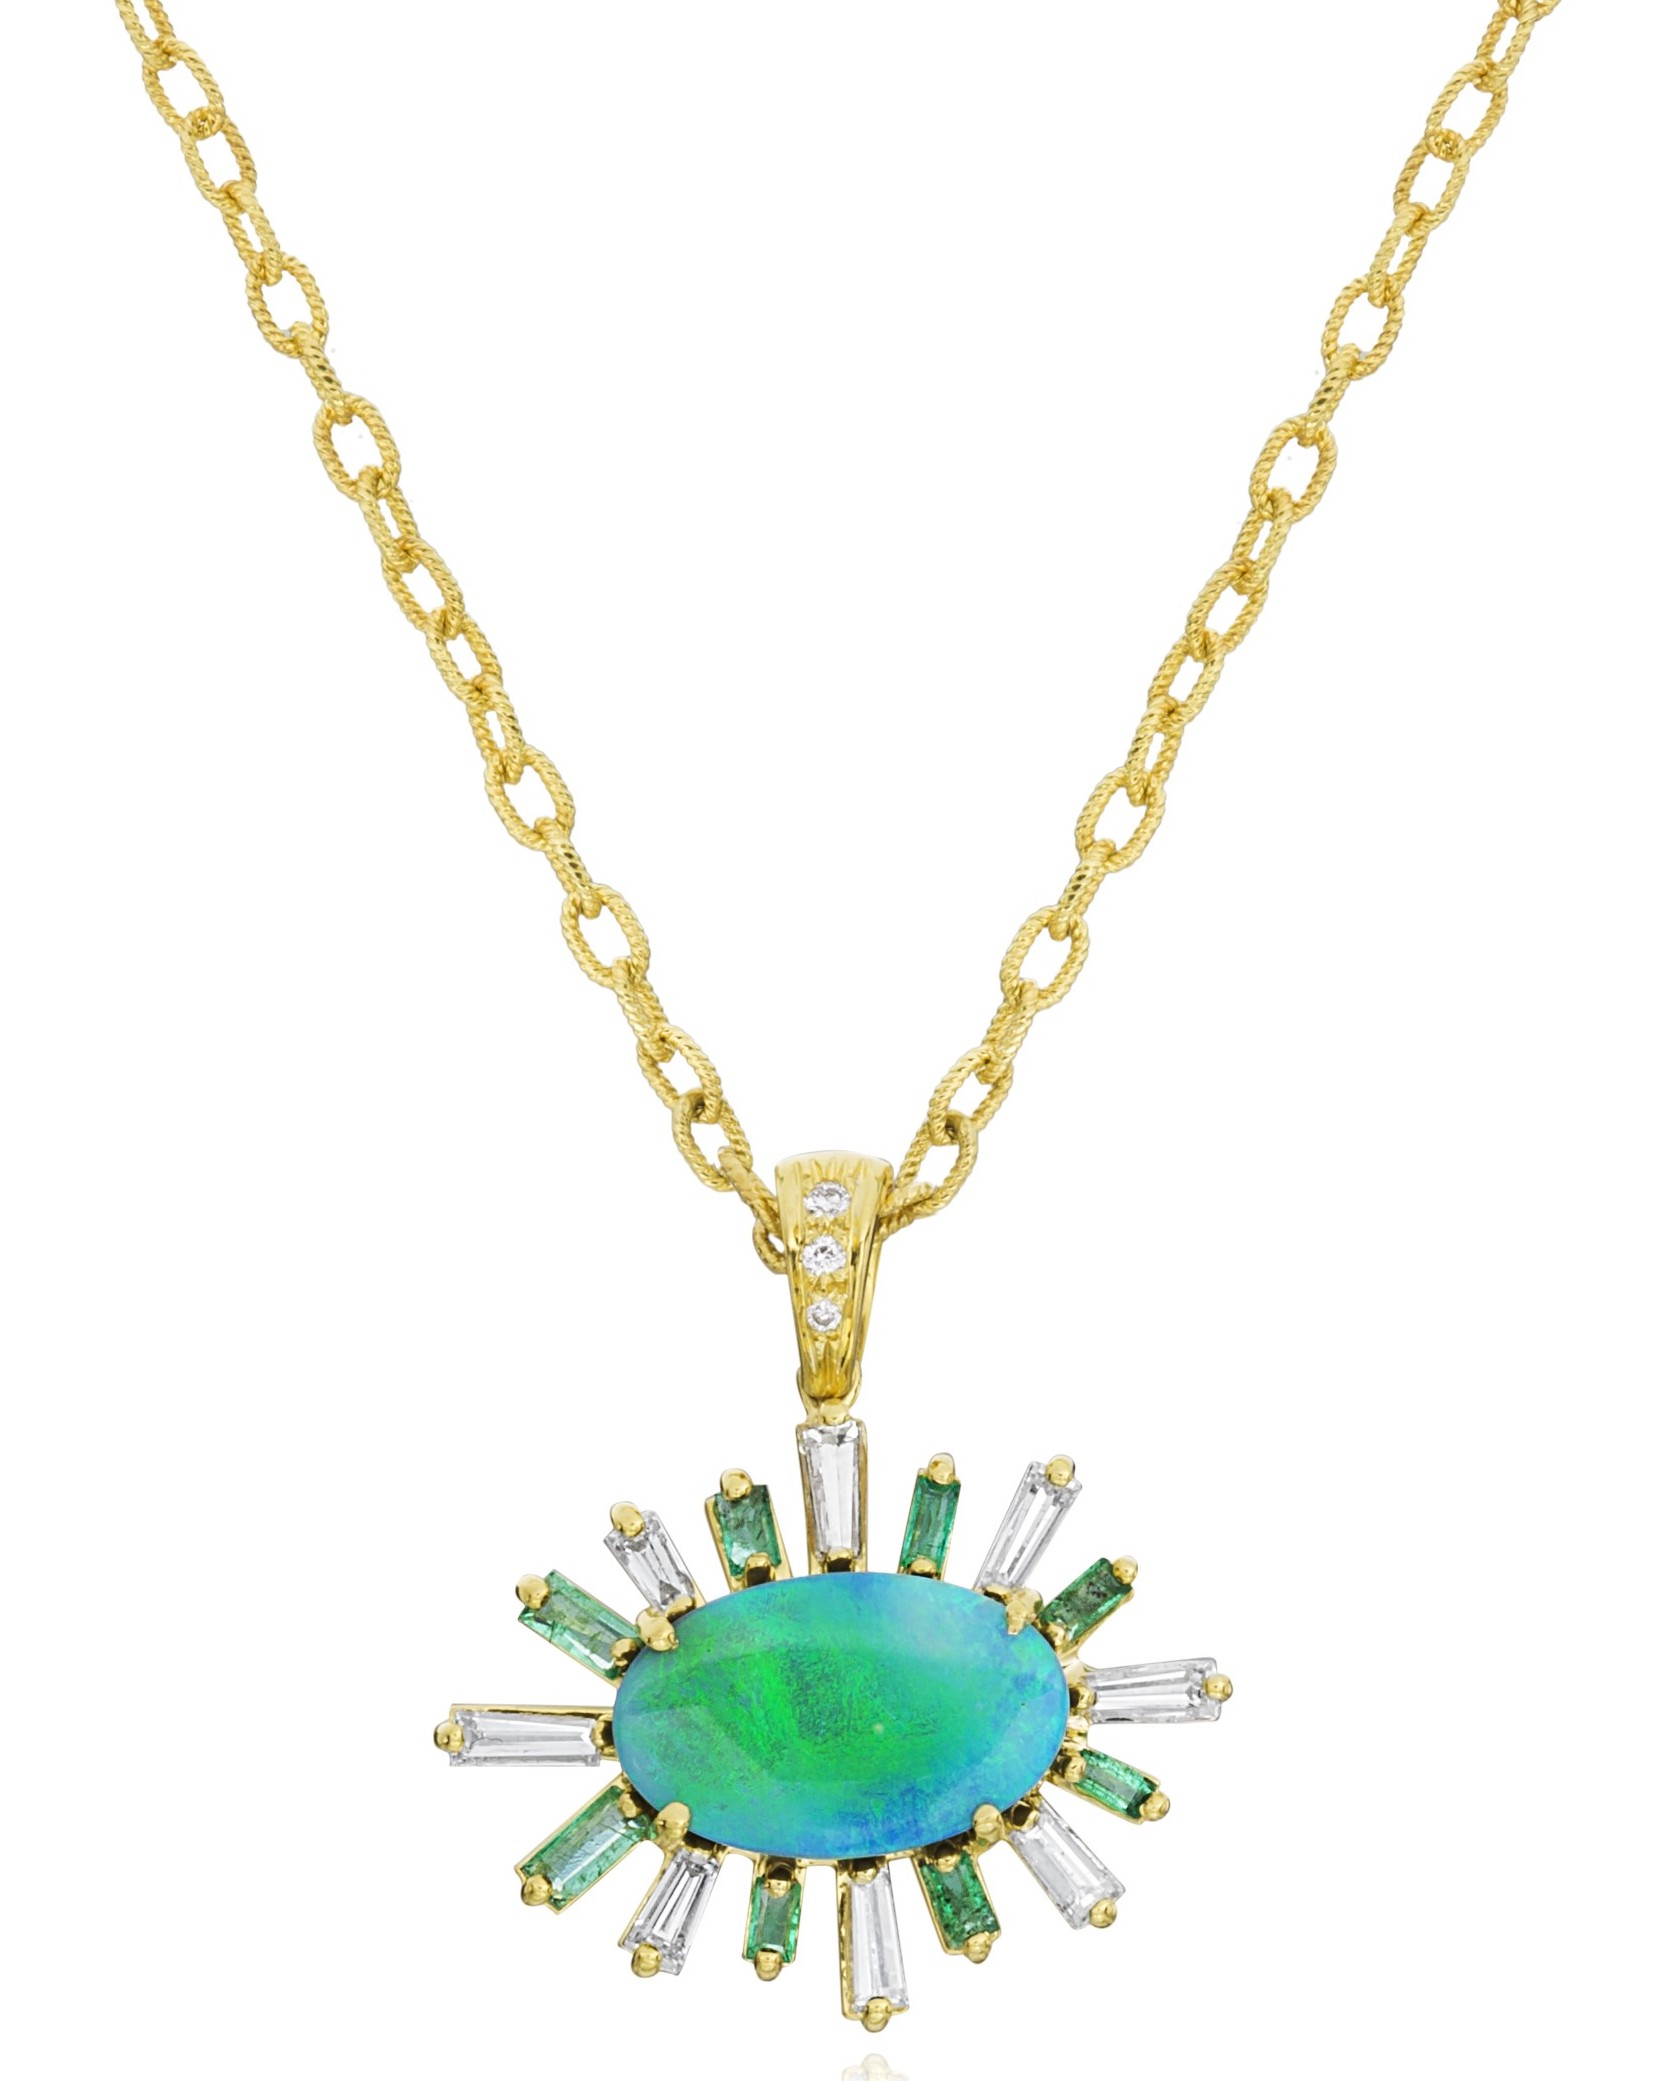 Lauren K Iris opal and emerald necklace | JCK On Your Market